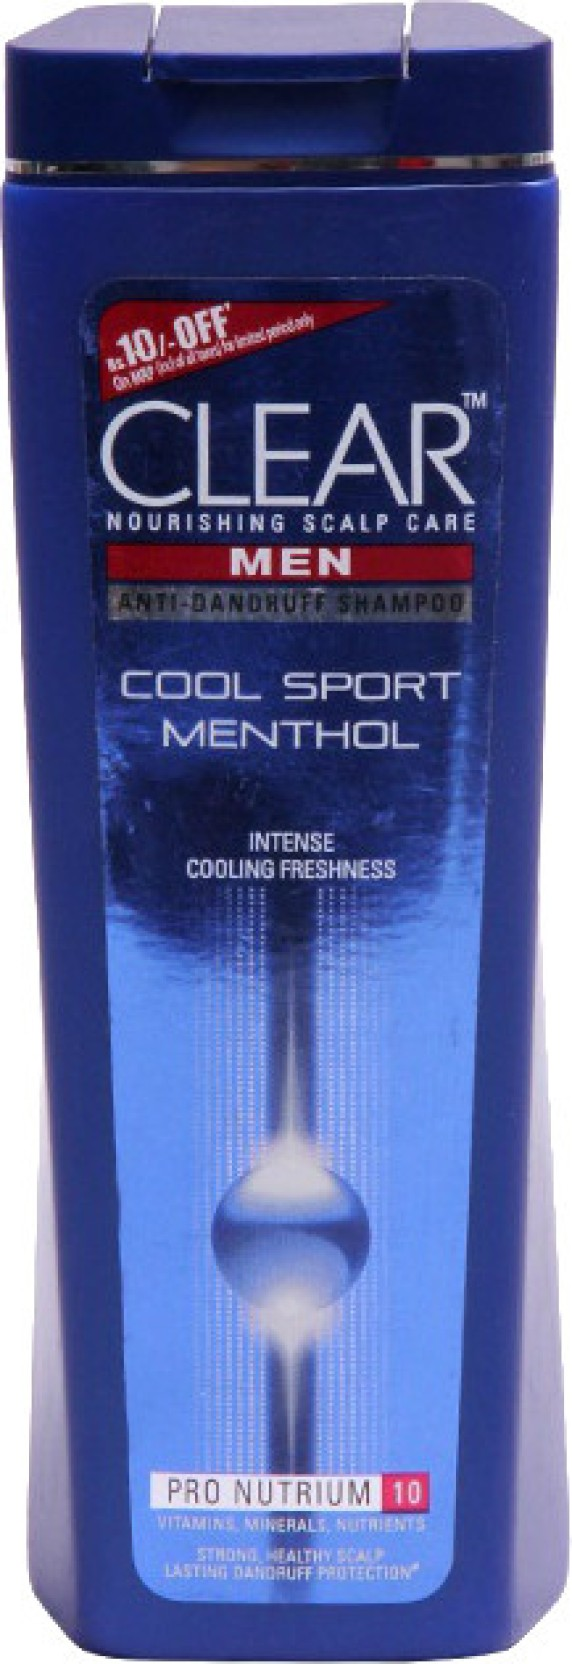 Clear Men Anti Dandruff Cool Sport Menthol Shampoo Price In India Share